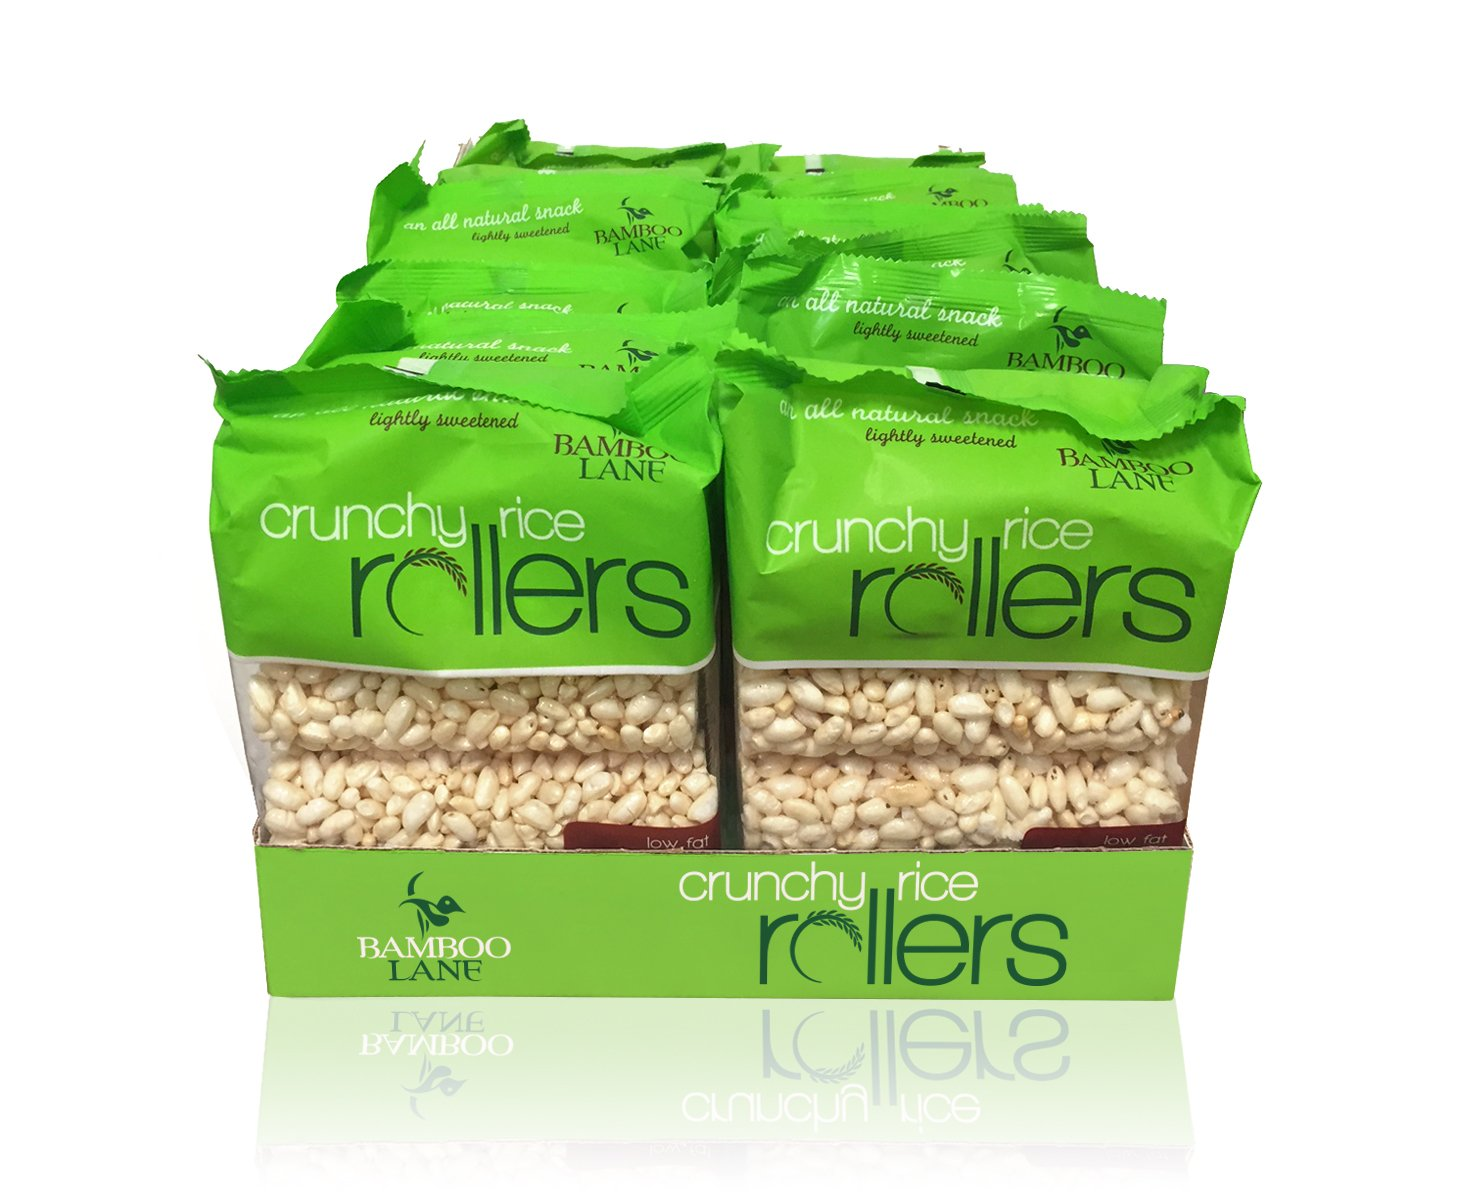 Bamboo Lane Crunchy Rice Rollers 3.5oz (12 Packs of 8 Rollers) by Bamboo Lane